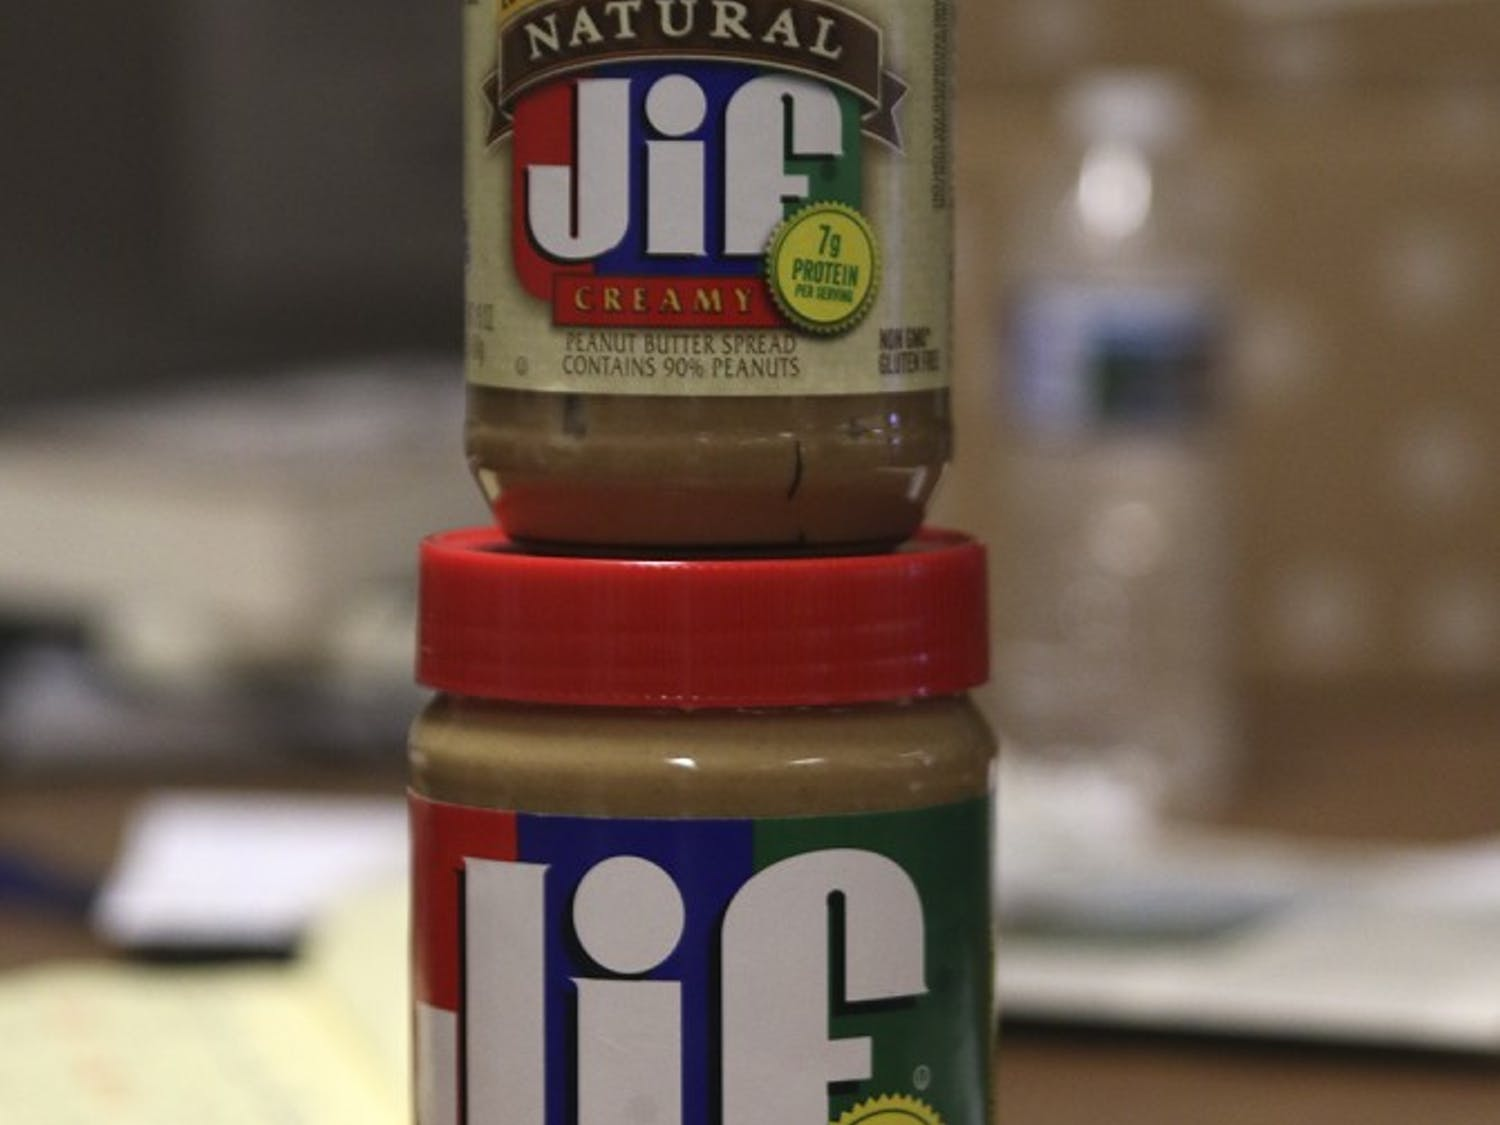 January 24th is National Peanut Butter Day.